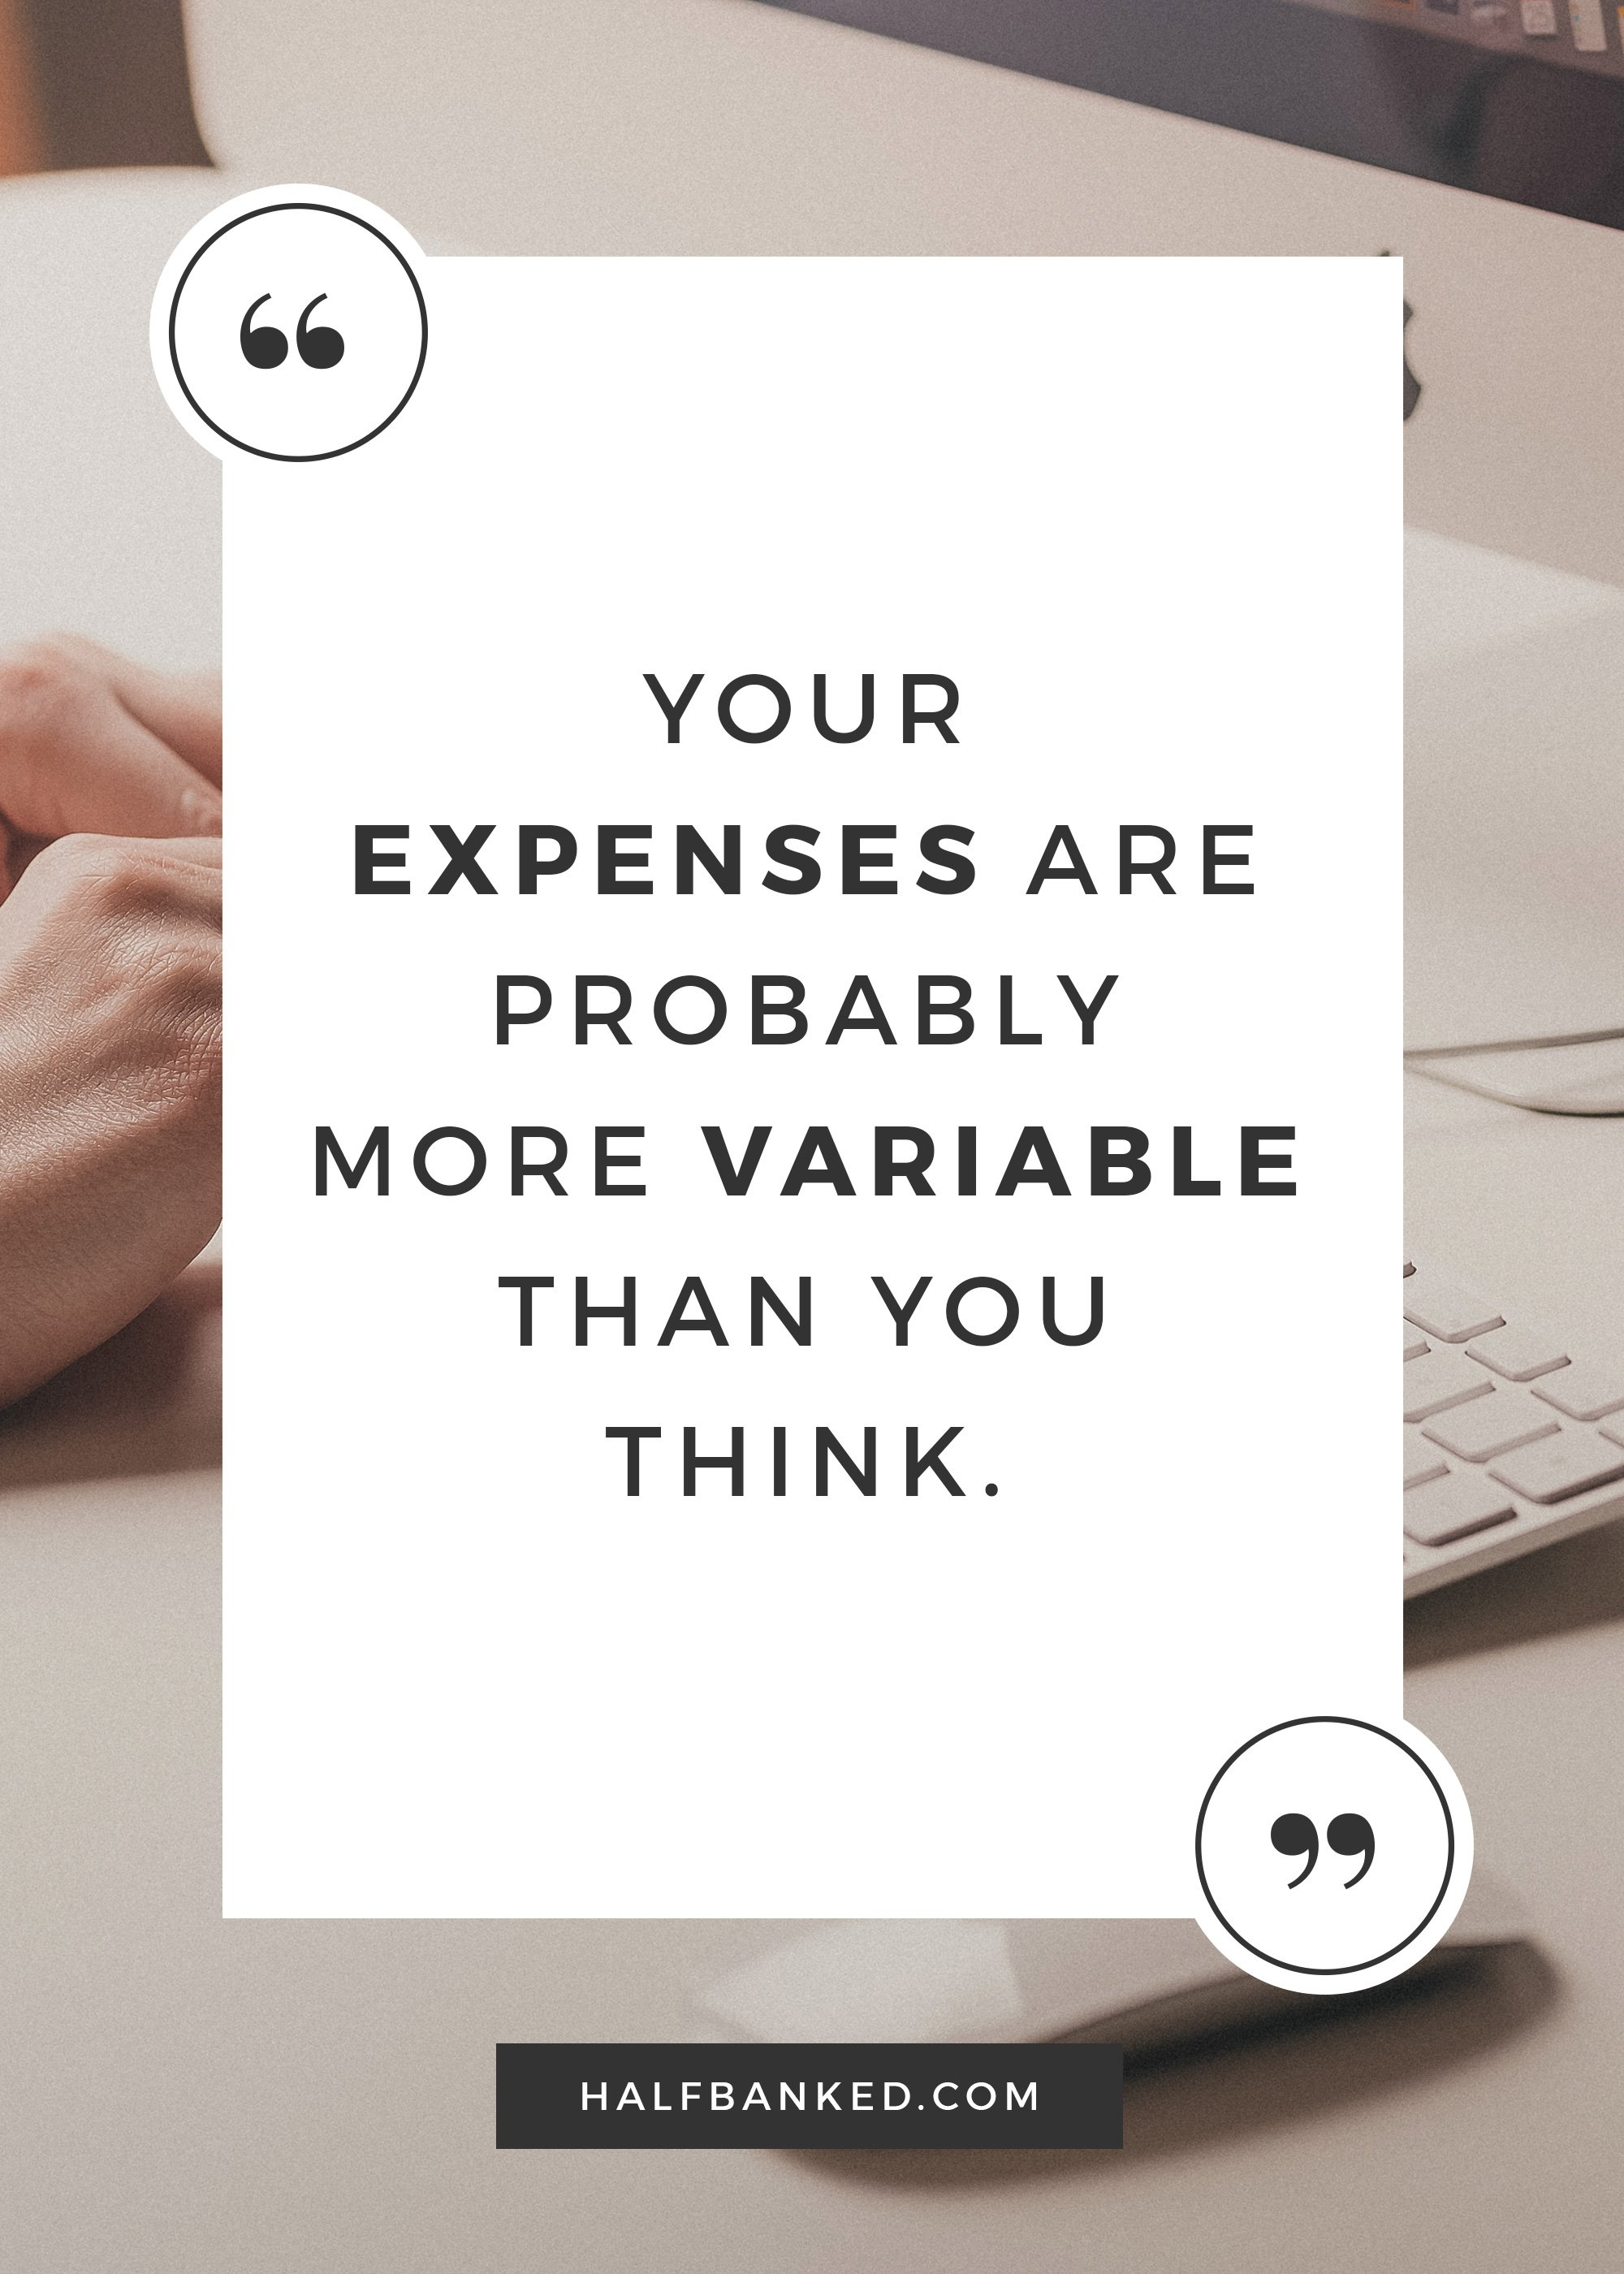 If you're not tracking your spending, your expenses are probably more variable than you think.